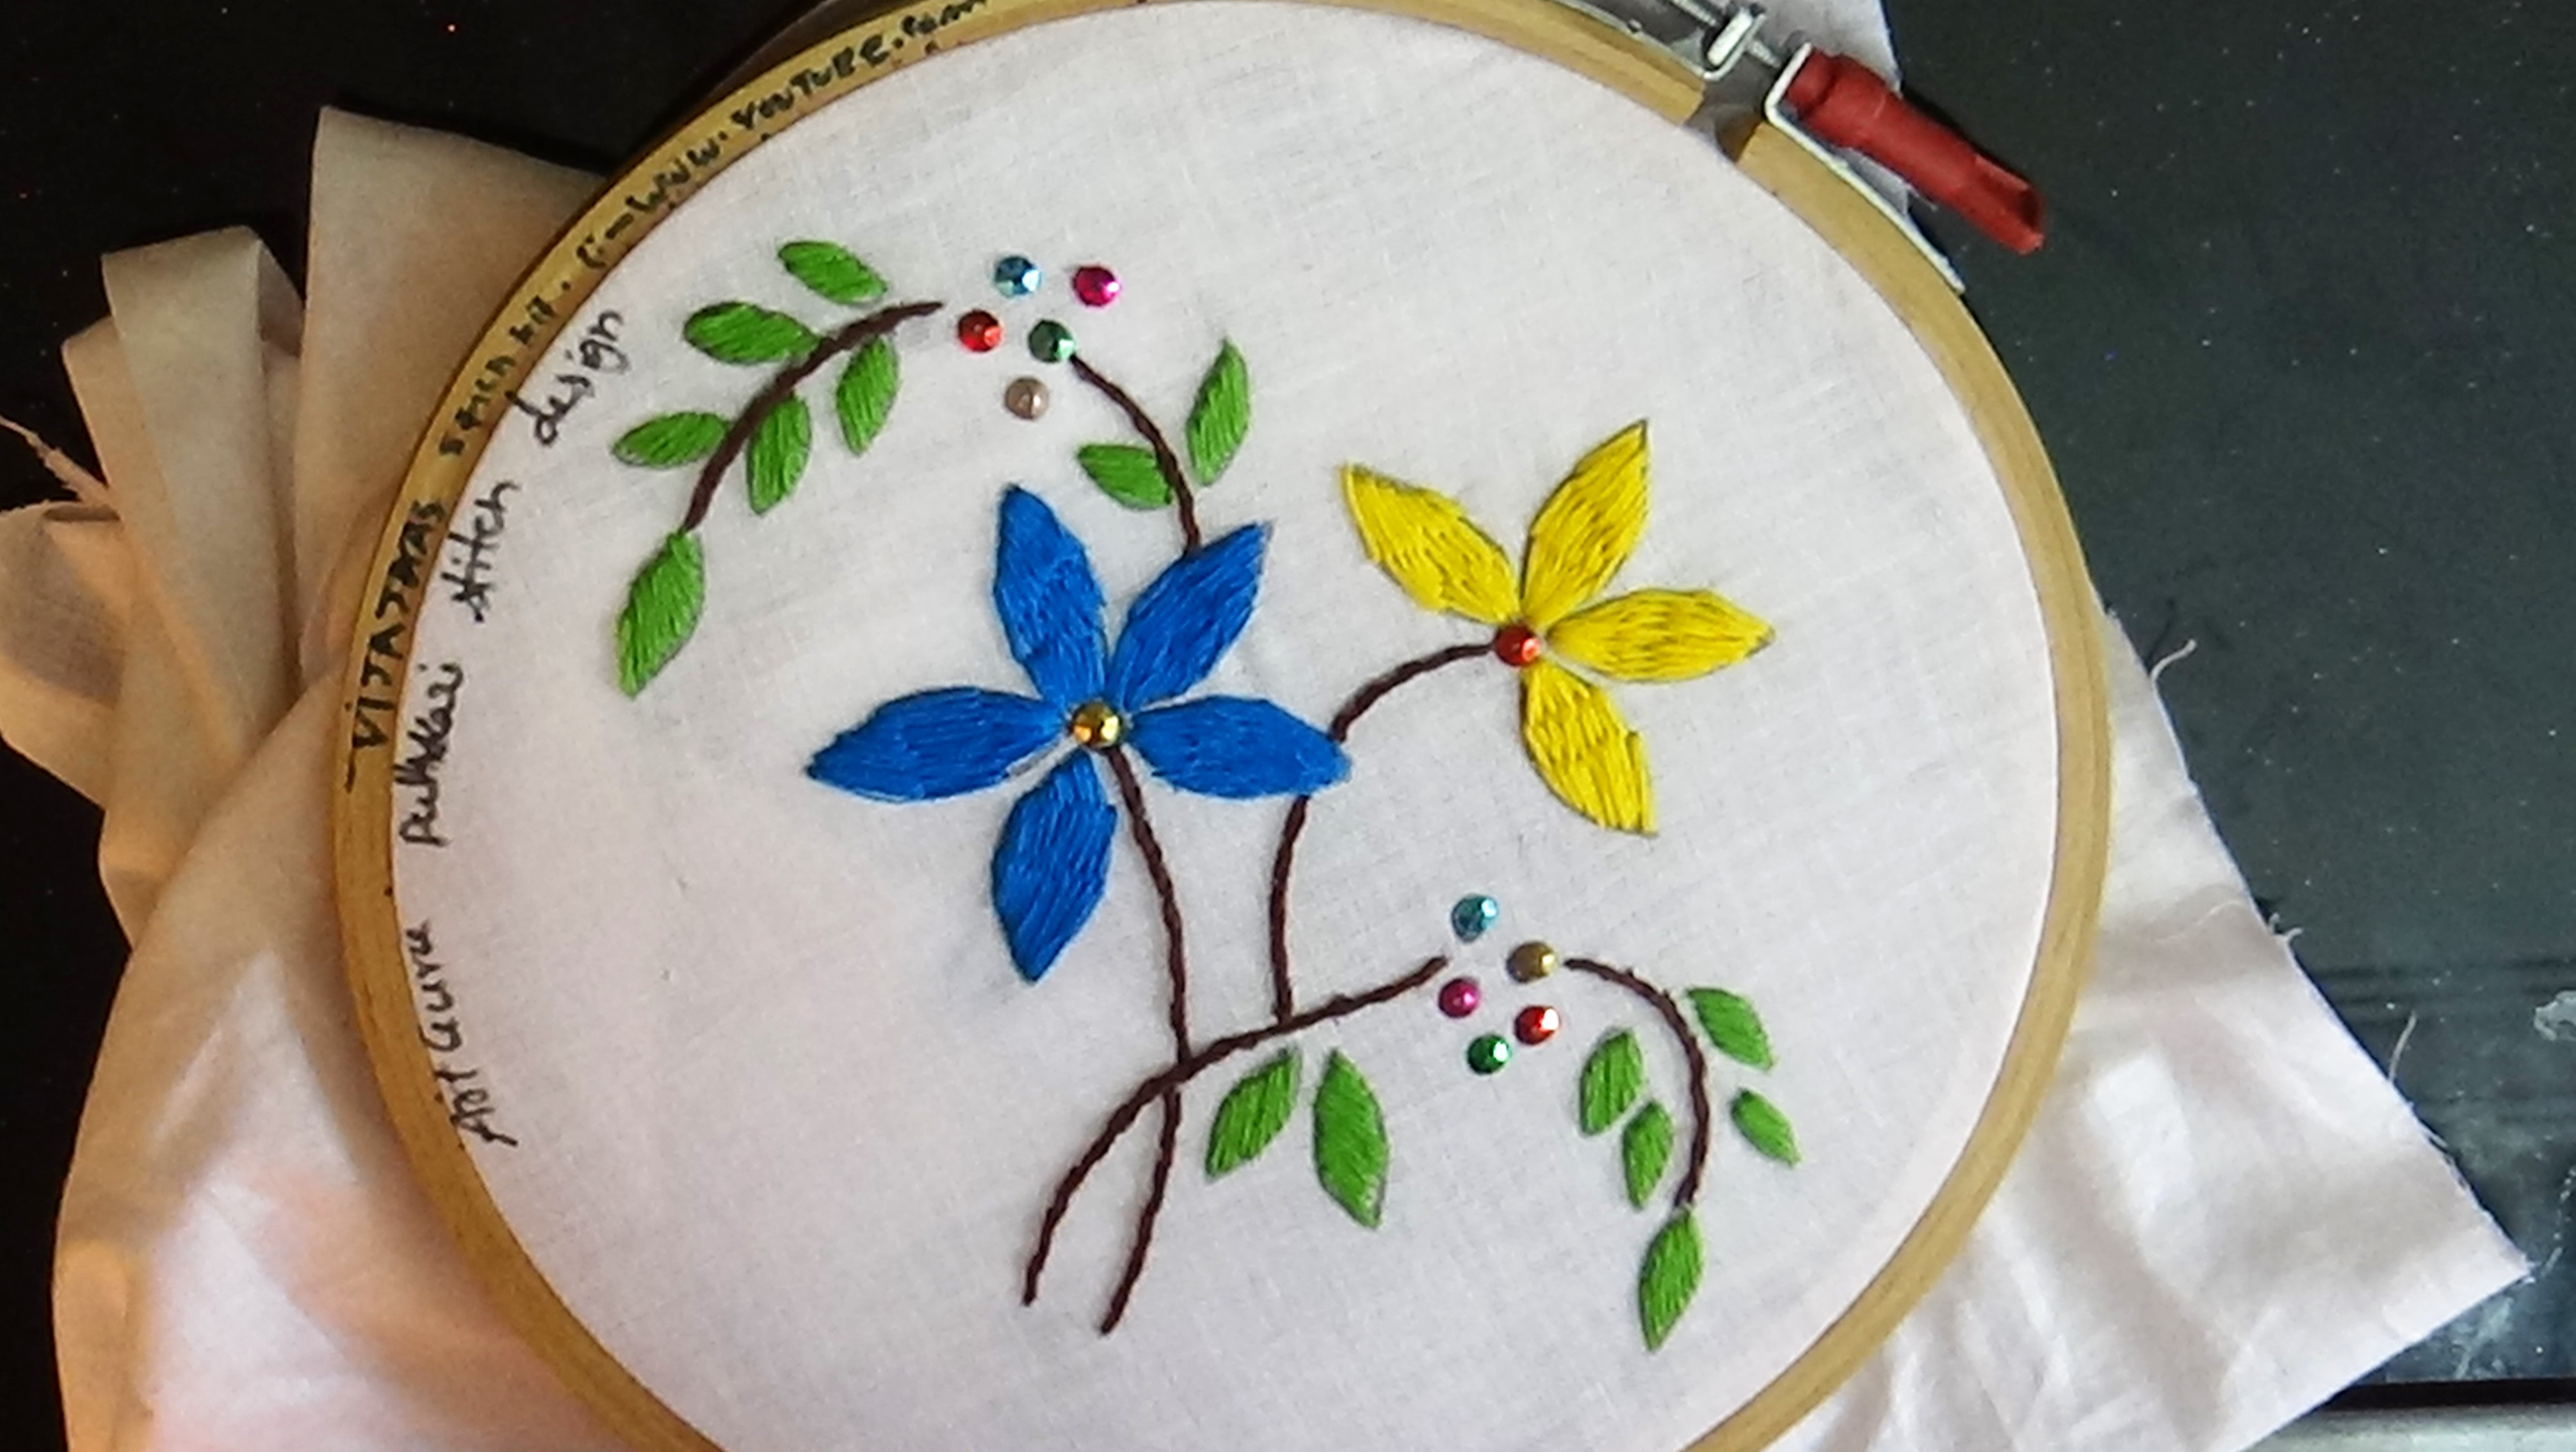 How To Make Embroidery Patterns Handcraft Guru Easy Creative Hand Craft Ideas With Tutorial